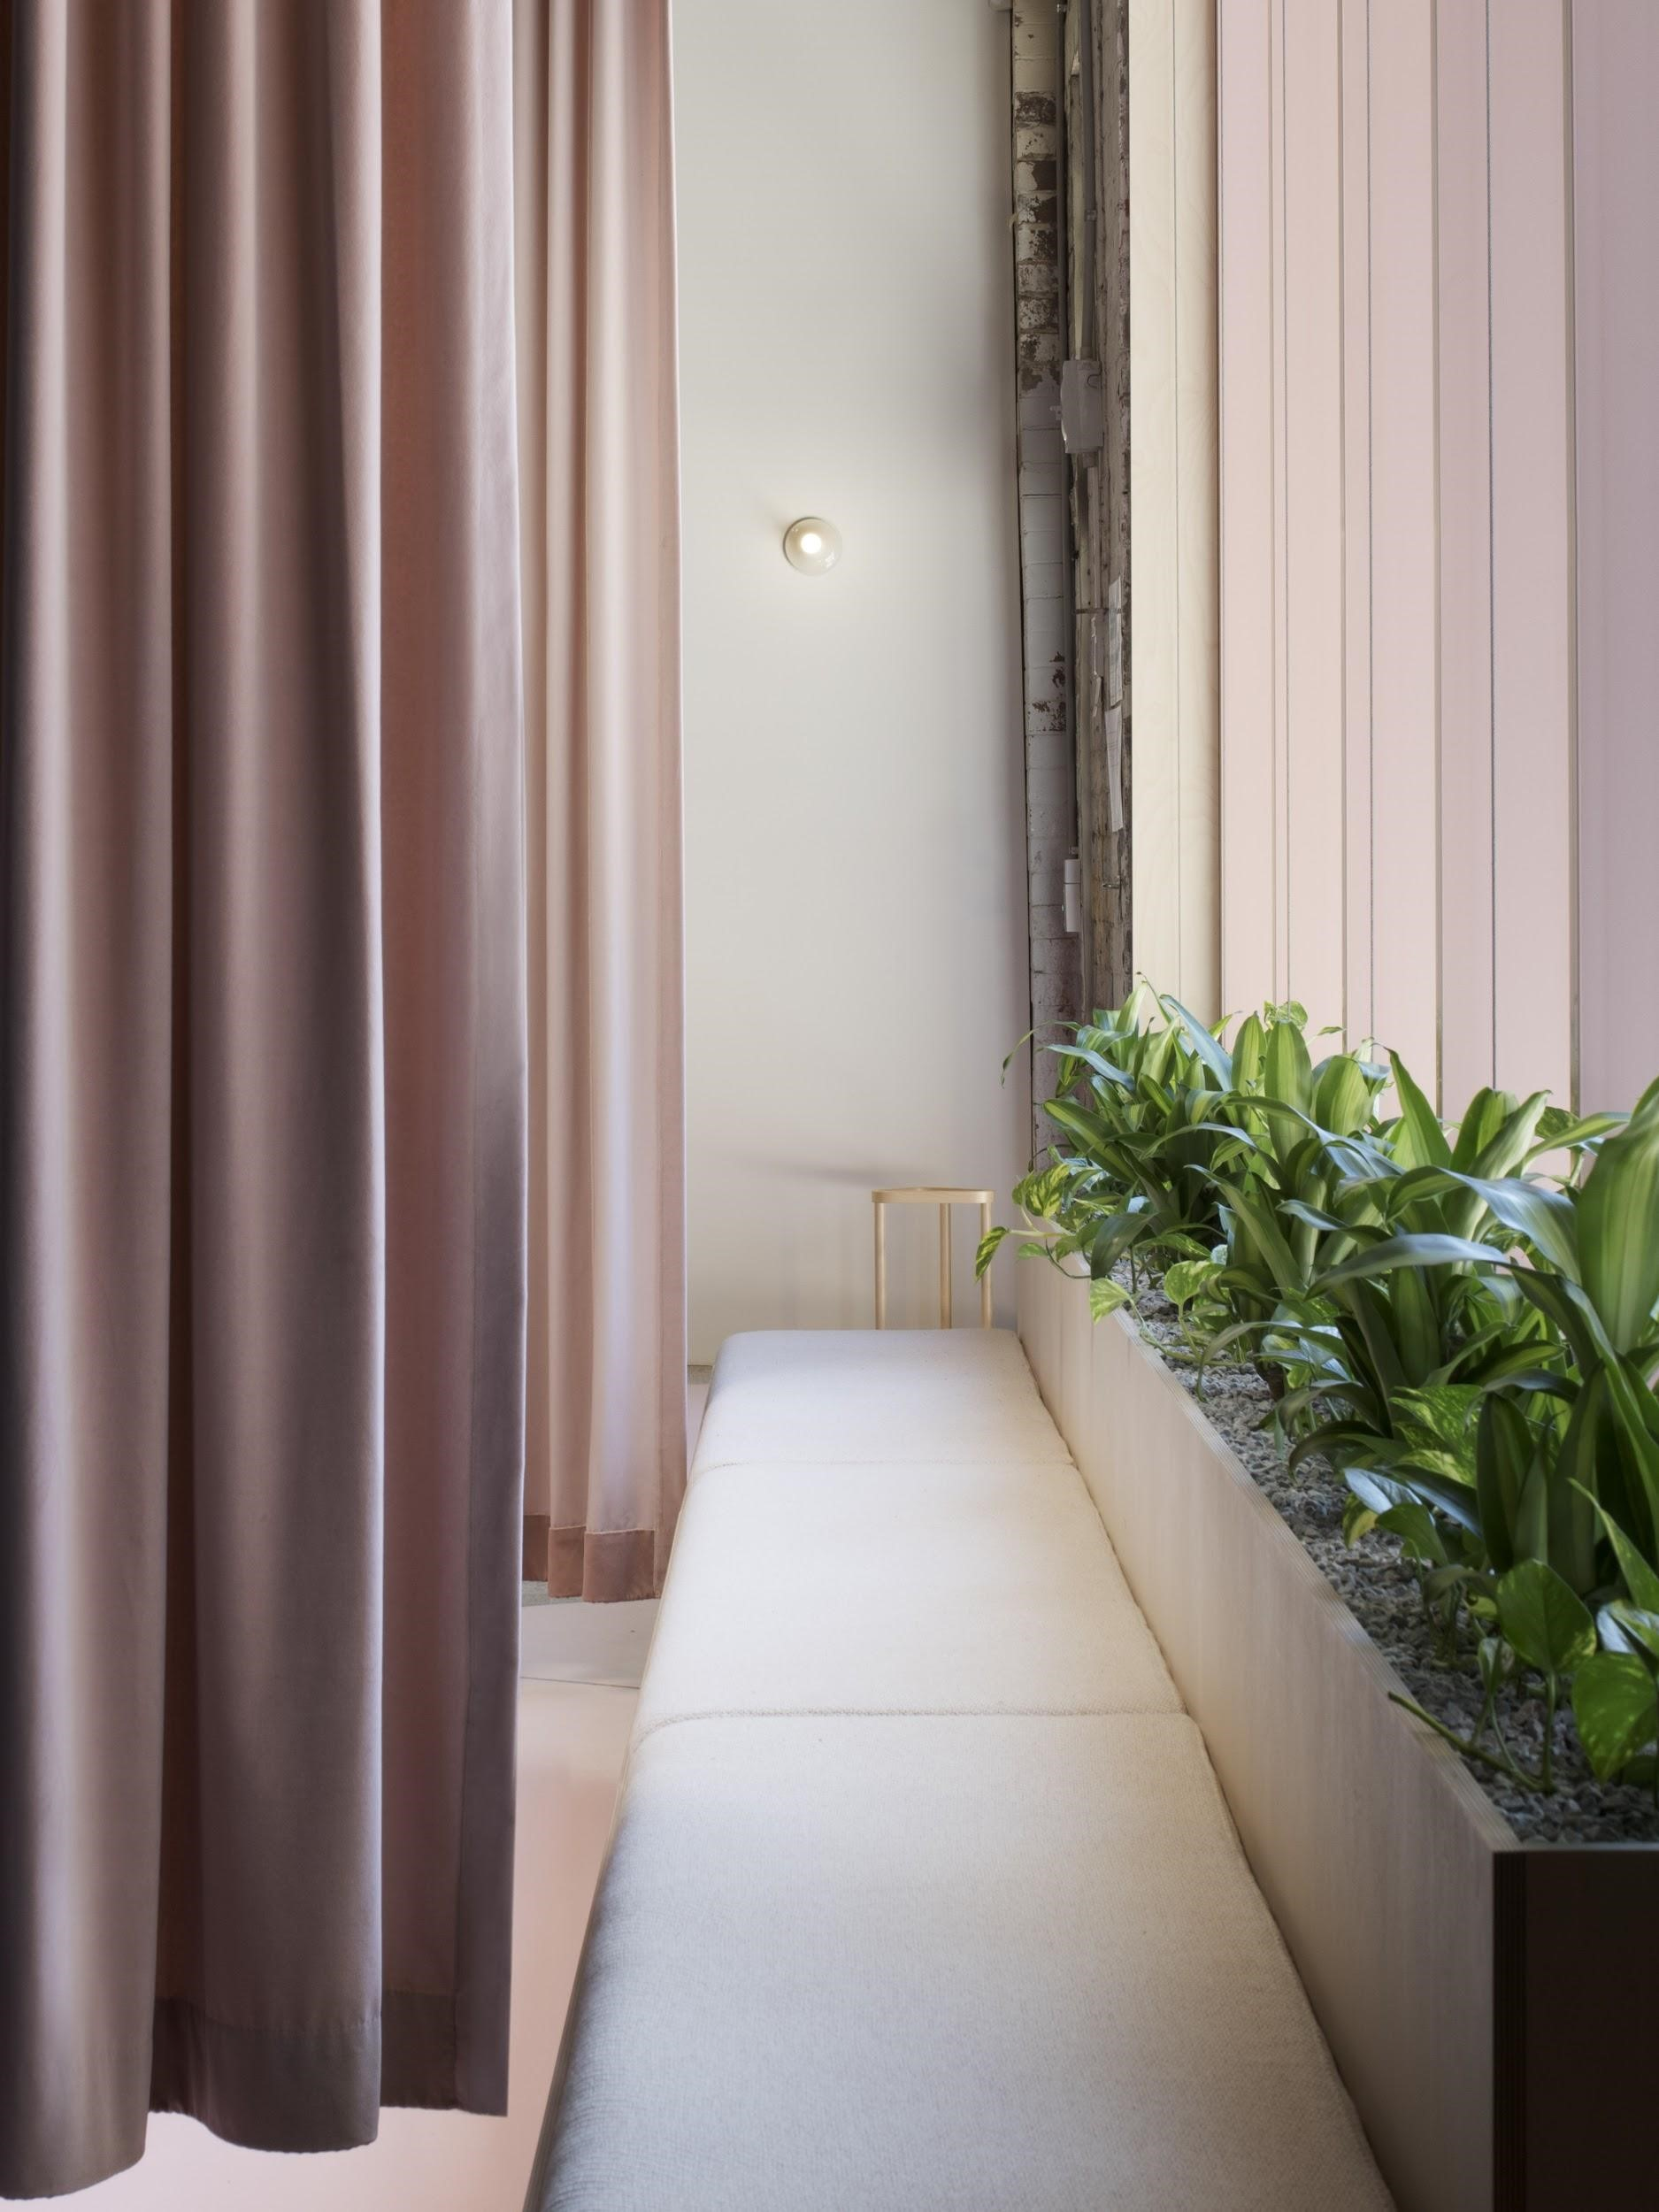 The Curtains Allow For More Flexible Workspaces That Encourage Collaboration